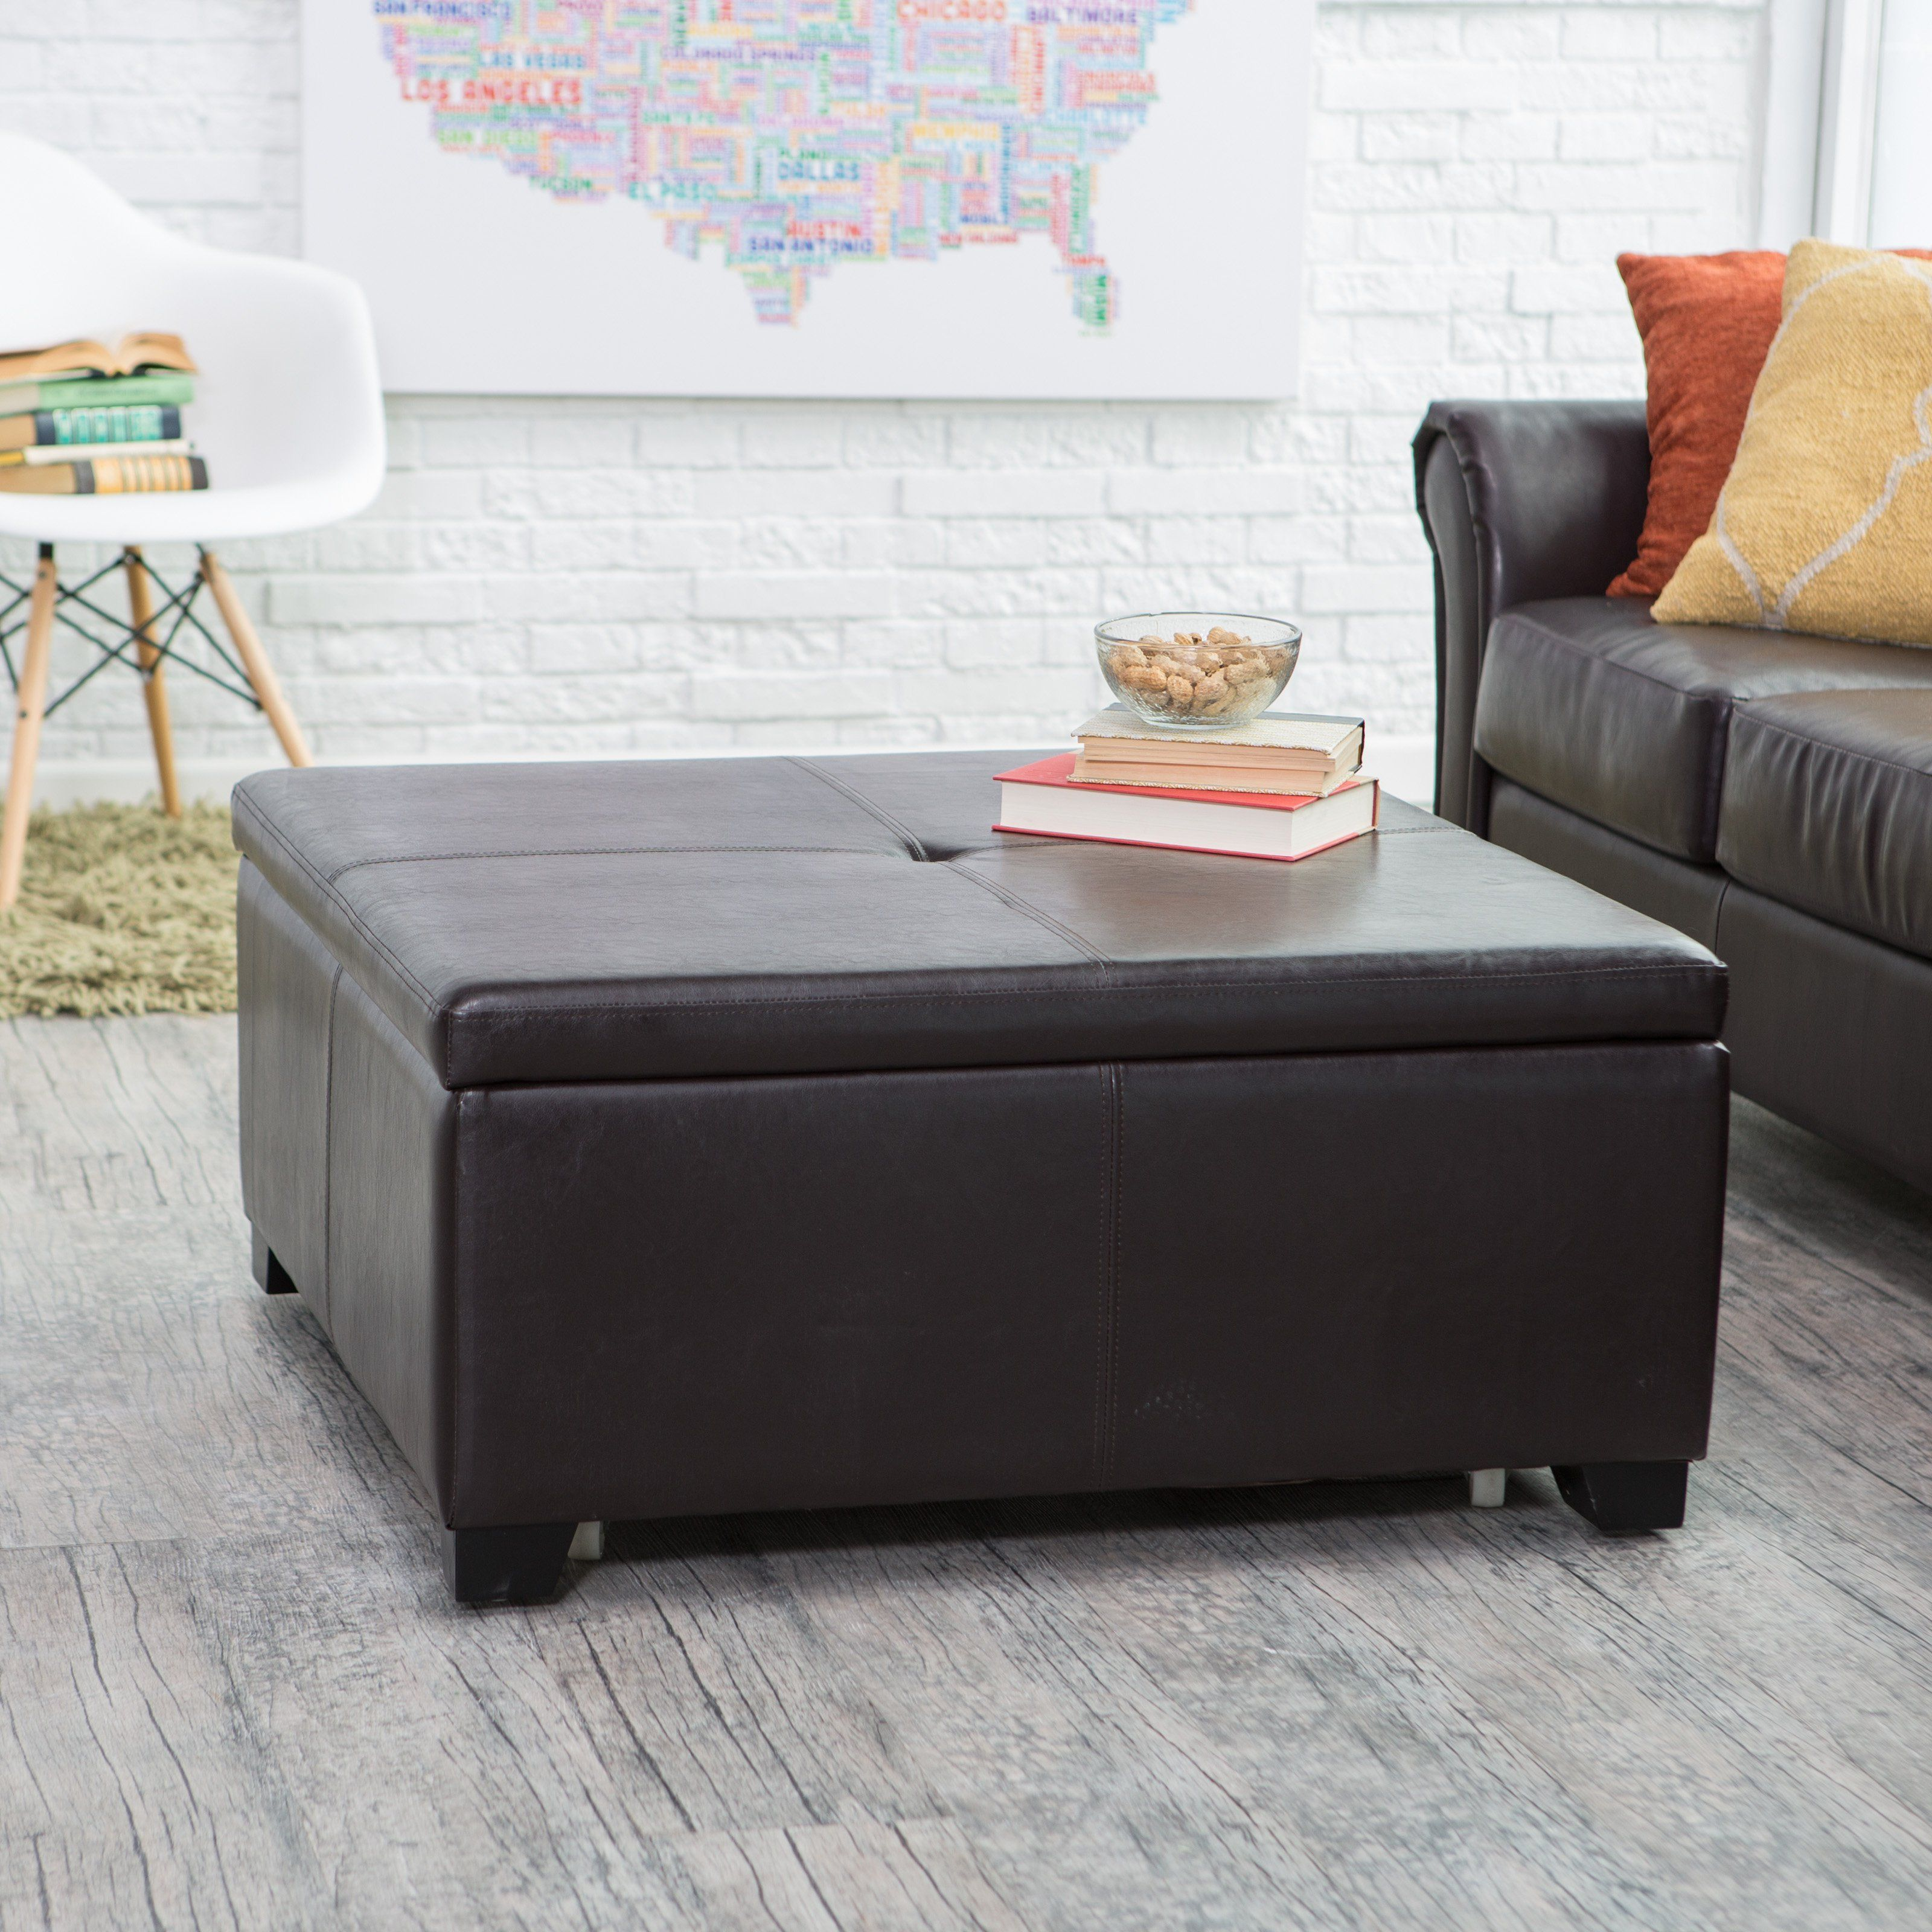 Storage Ottoman Coffee Table With Trays Collection Full Size Of Living Room Ottoman Ideas For Coff Storage Ottoman Coffee Table Coffee Table Storage Ottoman [ 3200 x 3200 Pixel ]